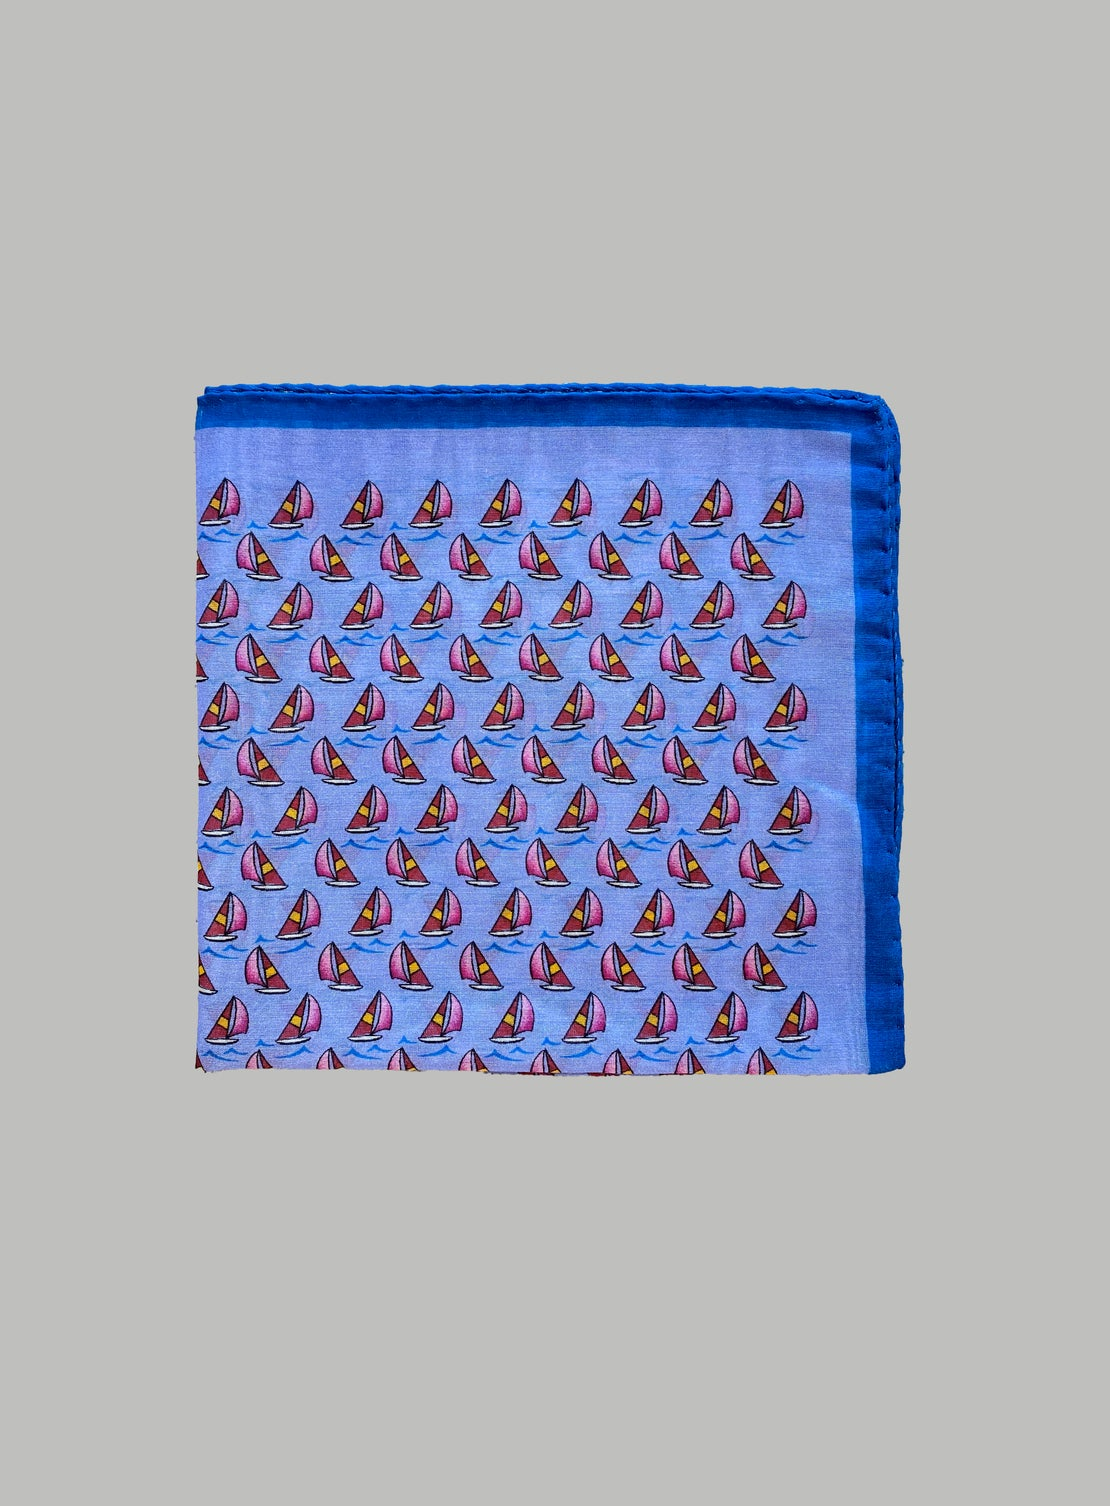 Cobalt Blue with Red/Pink Sail Boats